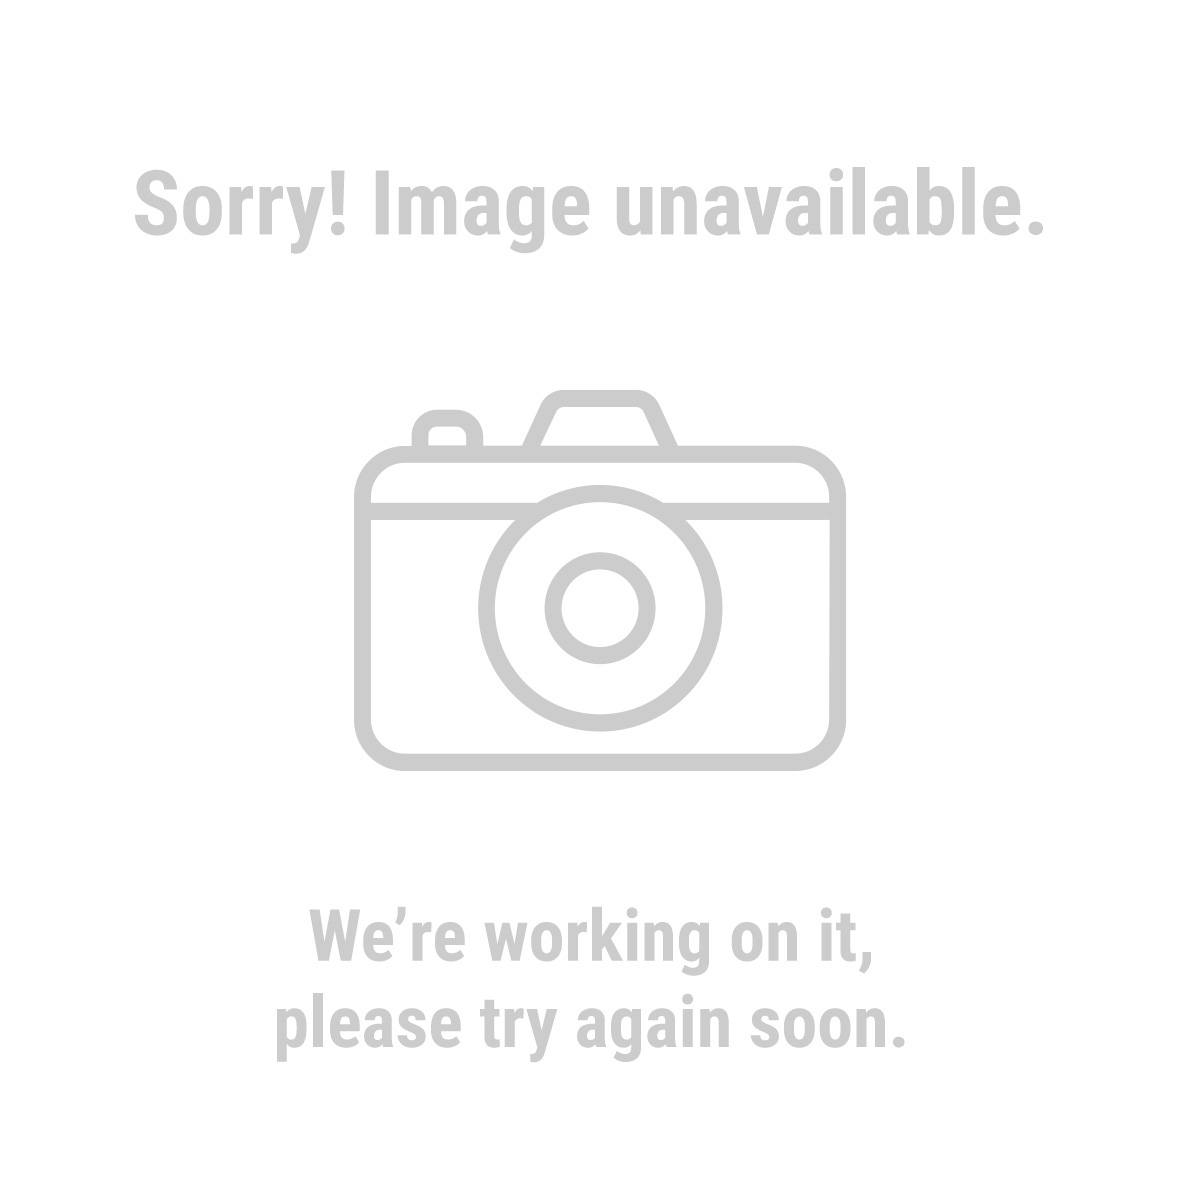 Pittsburgh Automotive 68049 Low Profile Floor Jack with Rapid Pump®, 2.5 Ton Heavy Duty Steel